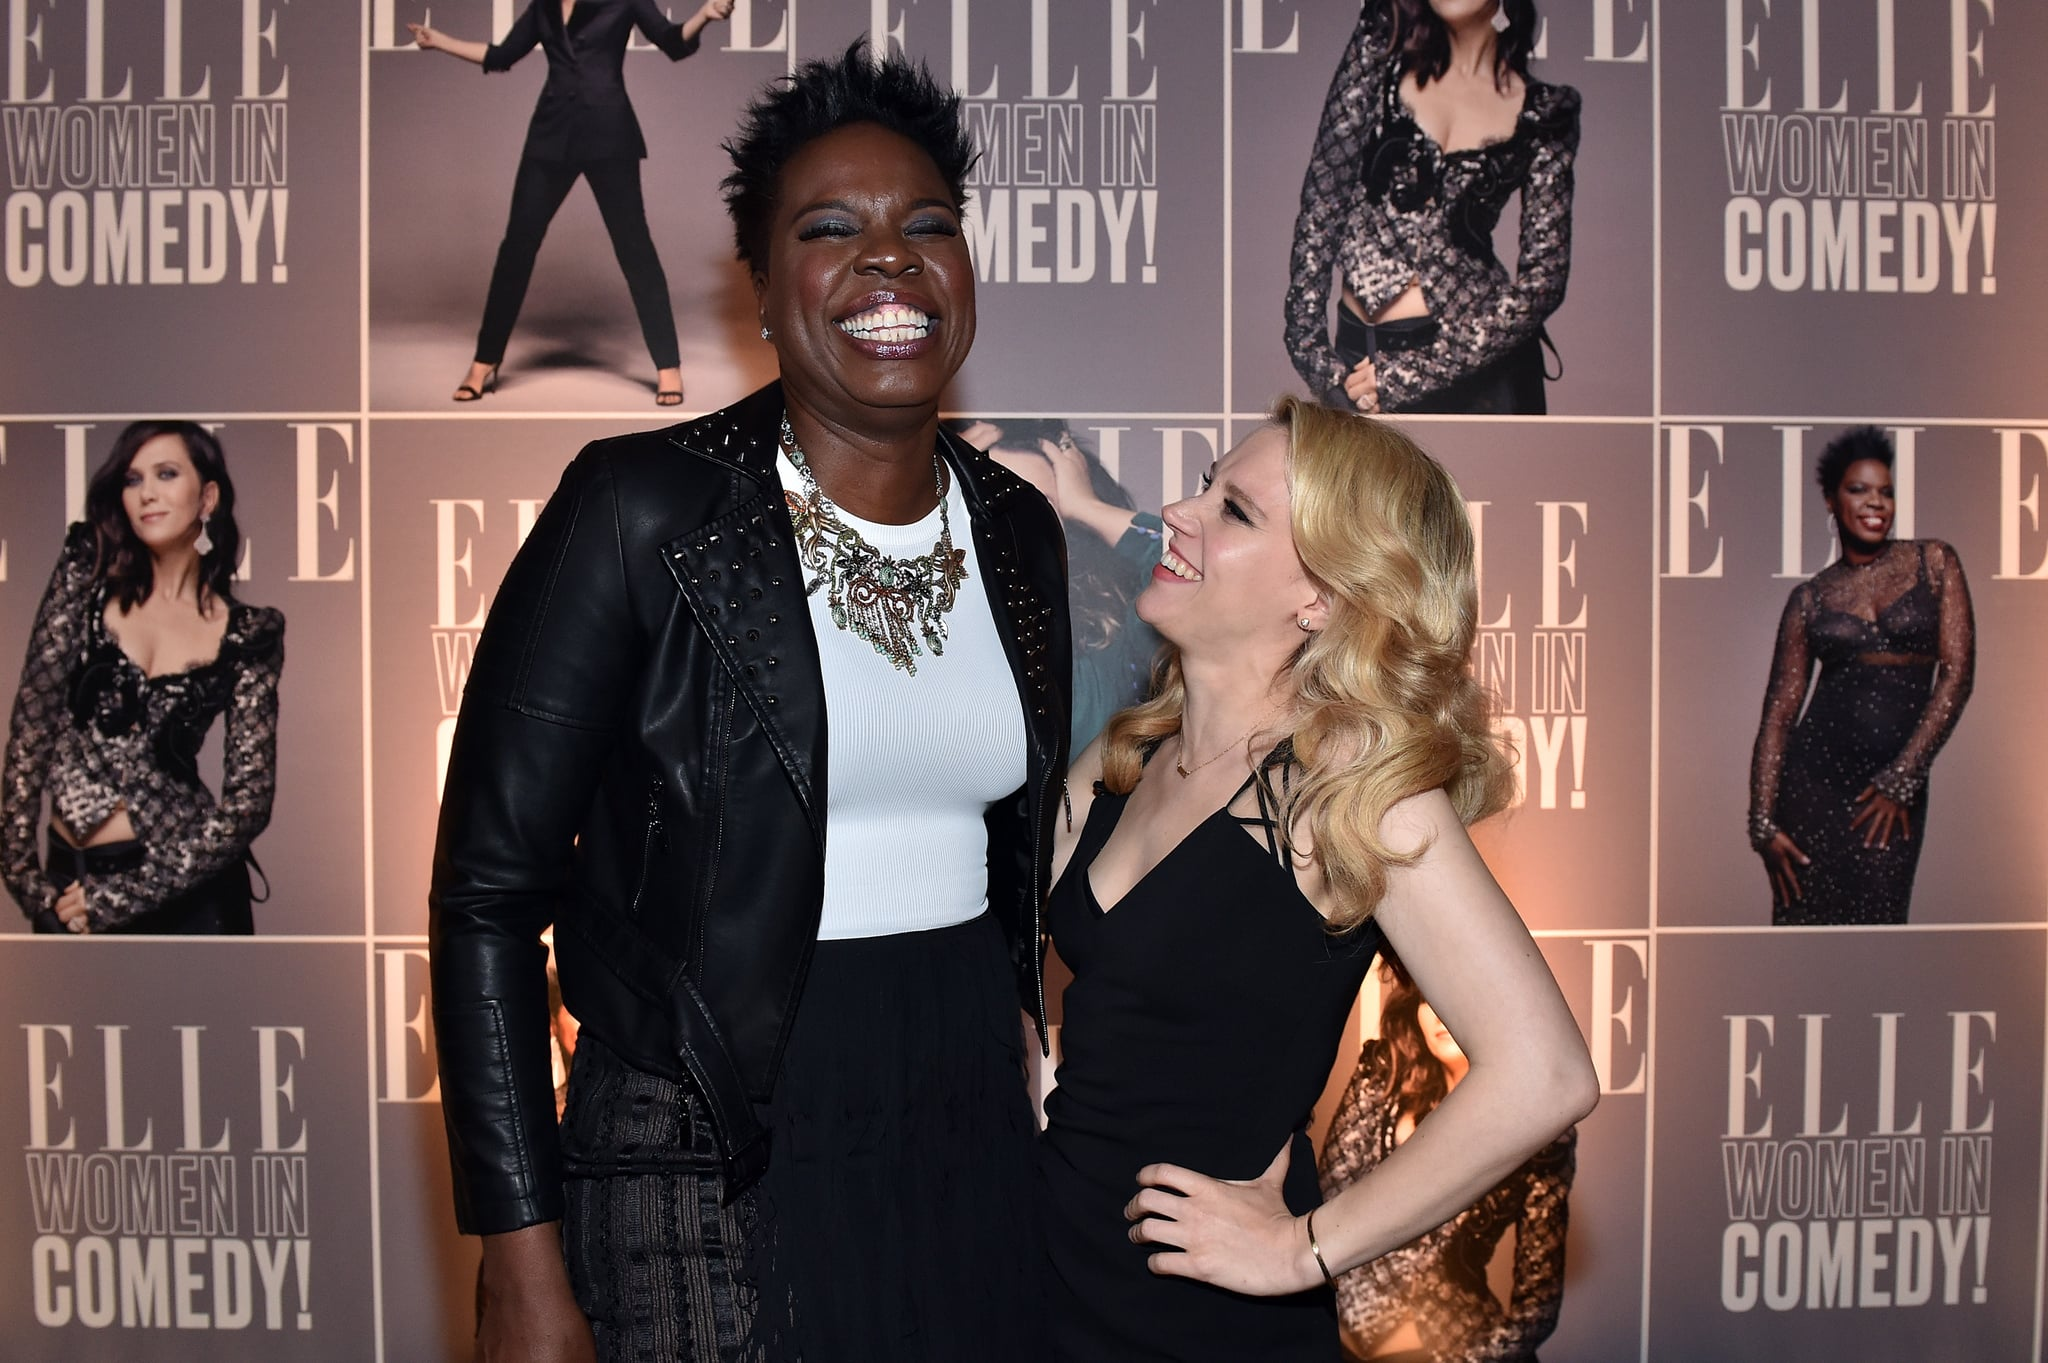 Kate McKinnon's Emmy win marks a surprising first for 'Saturday Night Live'